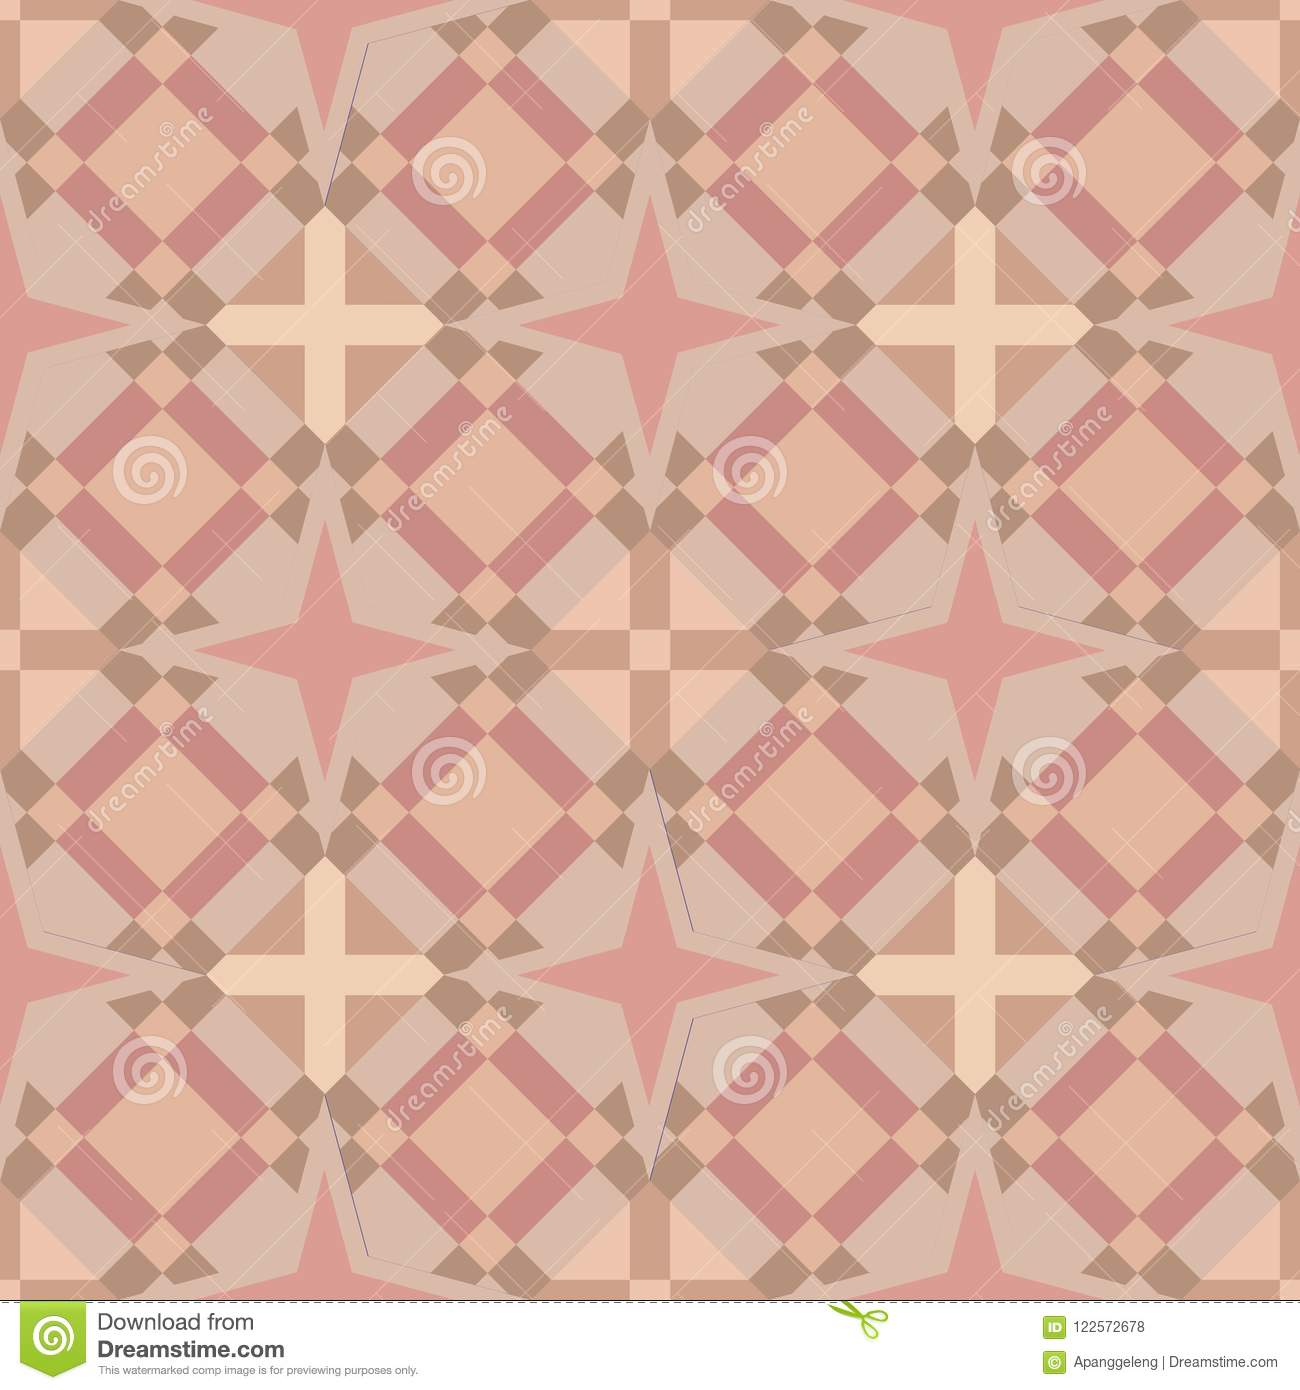 Seamless Geometric Square Tile Background in Soft Skin Colours